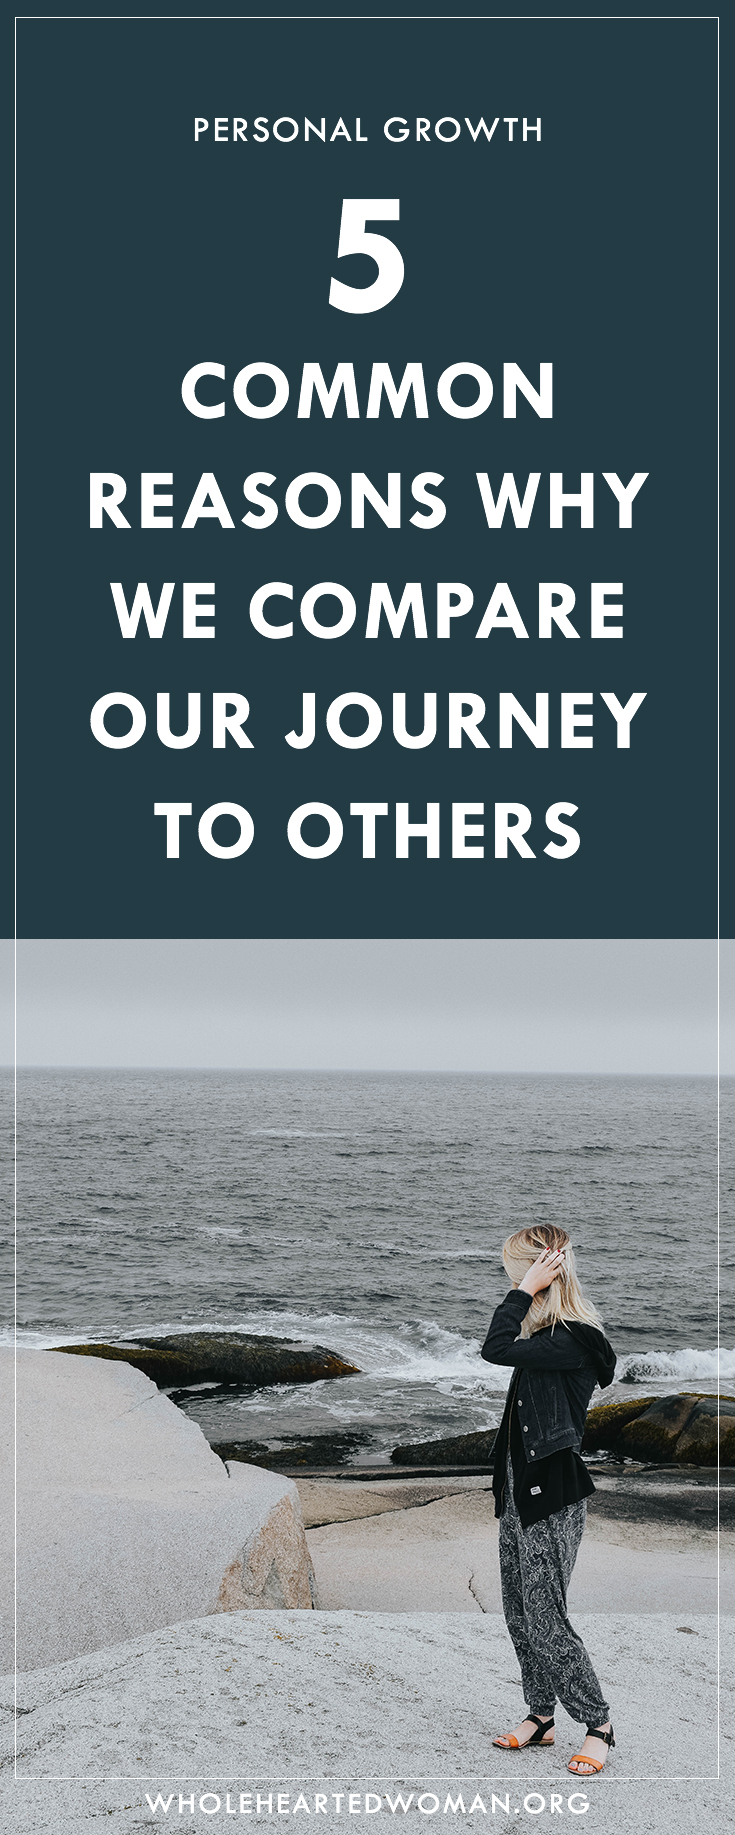 5 Common Reasons Why We Compare Our Journey To Others | Comparison Is The Thief Of Joy | Why Do We Compare Ourselves So Much With Others | Why We Need To Stop Comparing Our Journey To Others | How To Embrace The Pace Of Your Own Journey | Community Over Competition | Empowered Women Empower Women | Personal Development and Growth Blog | Self-Awareness | Wholehearted Woman